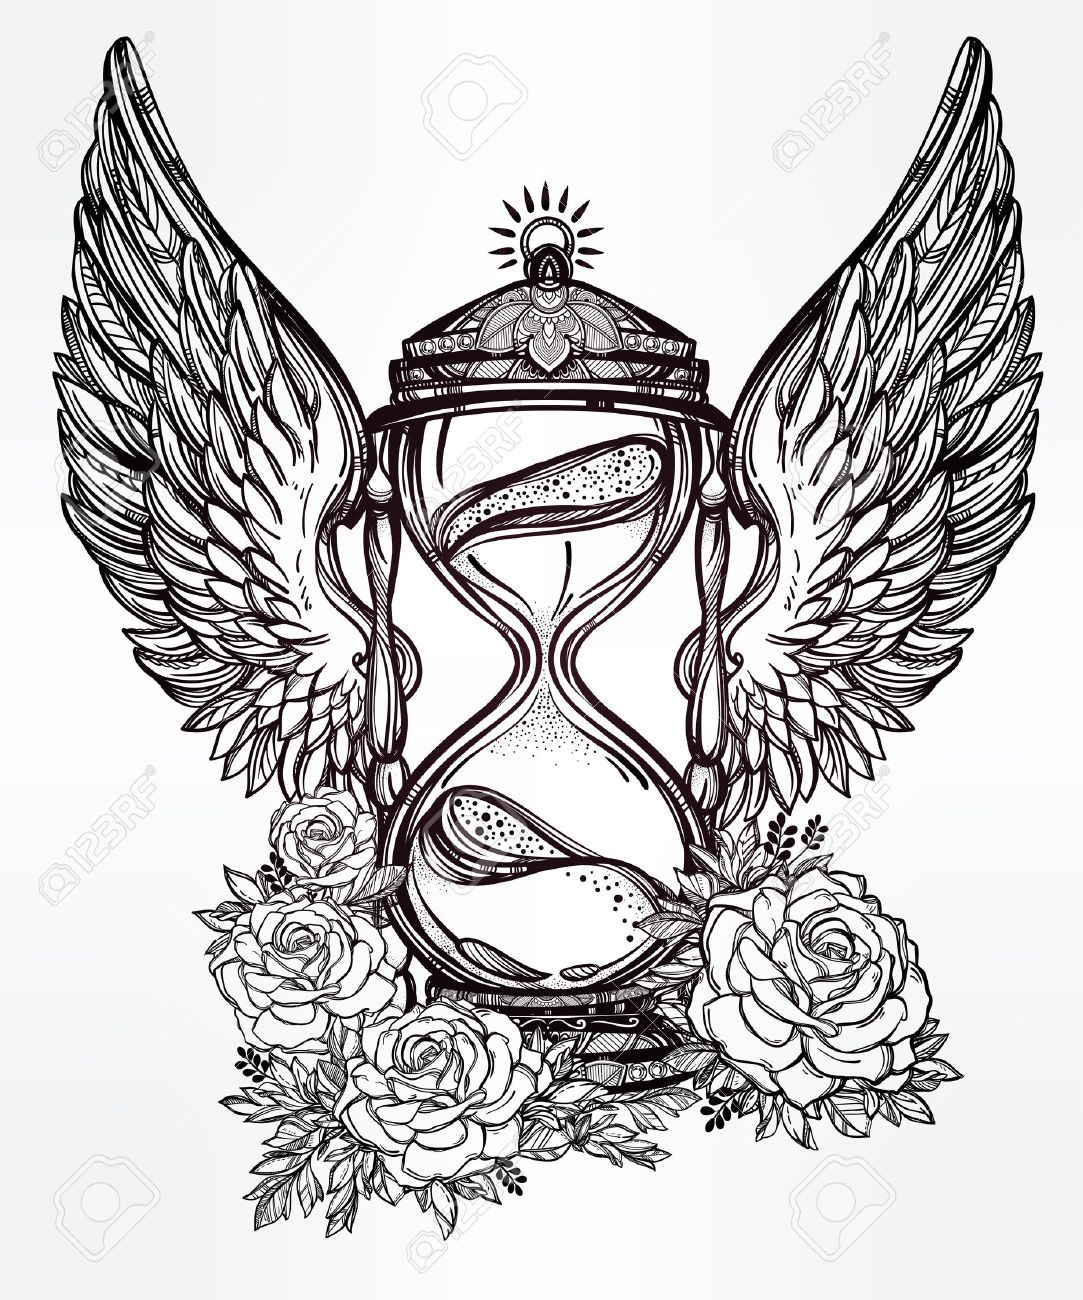 1083x1300 Hand Drawn Romantic Beautiful Drawing Of A Hourglass. Vector